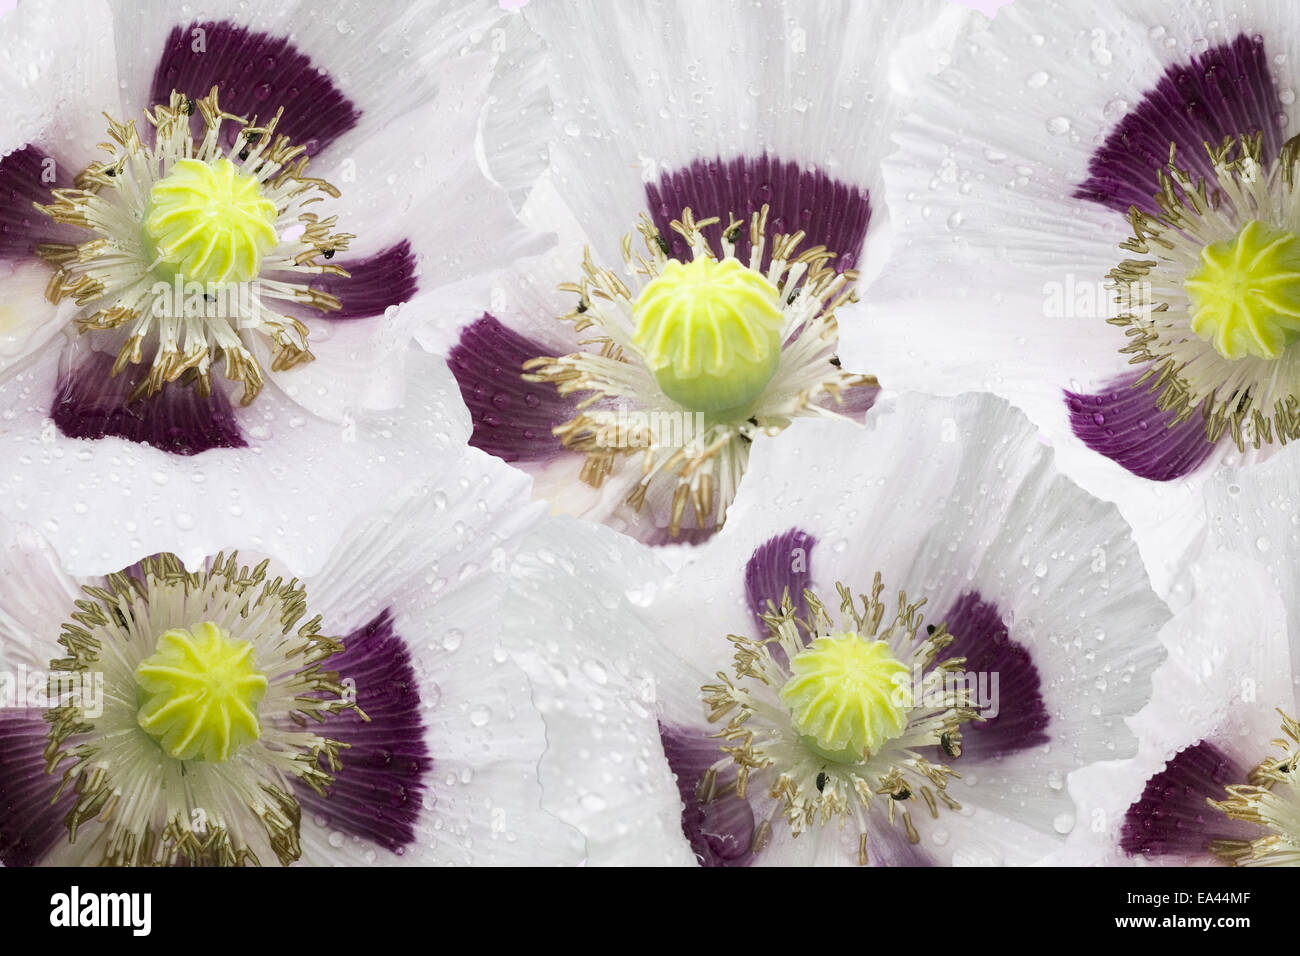 poppy flowers - Stock Image